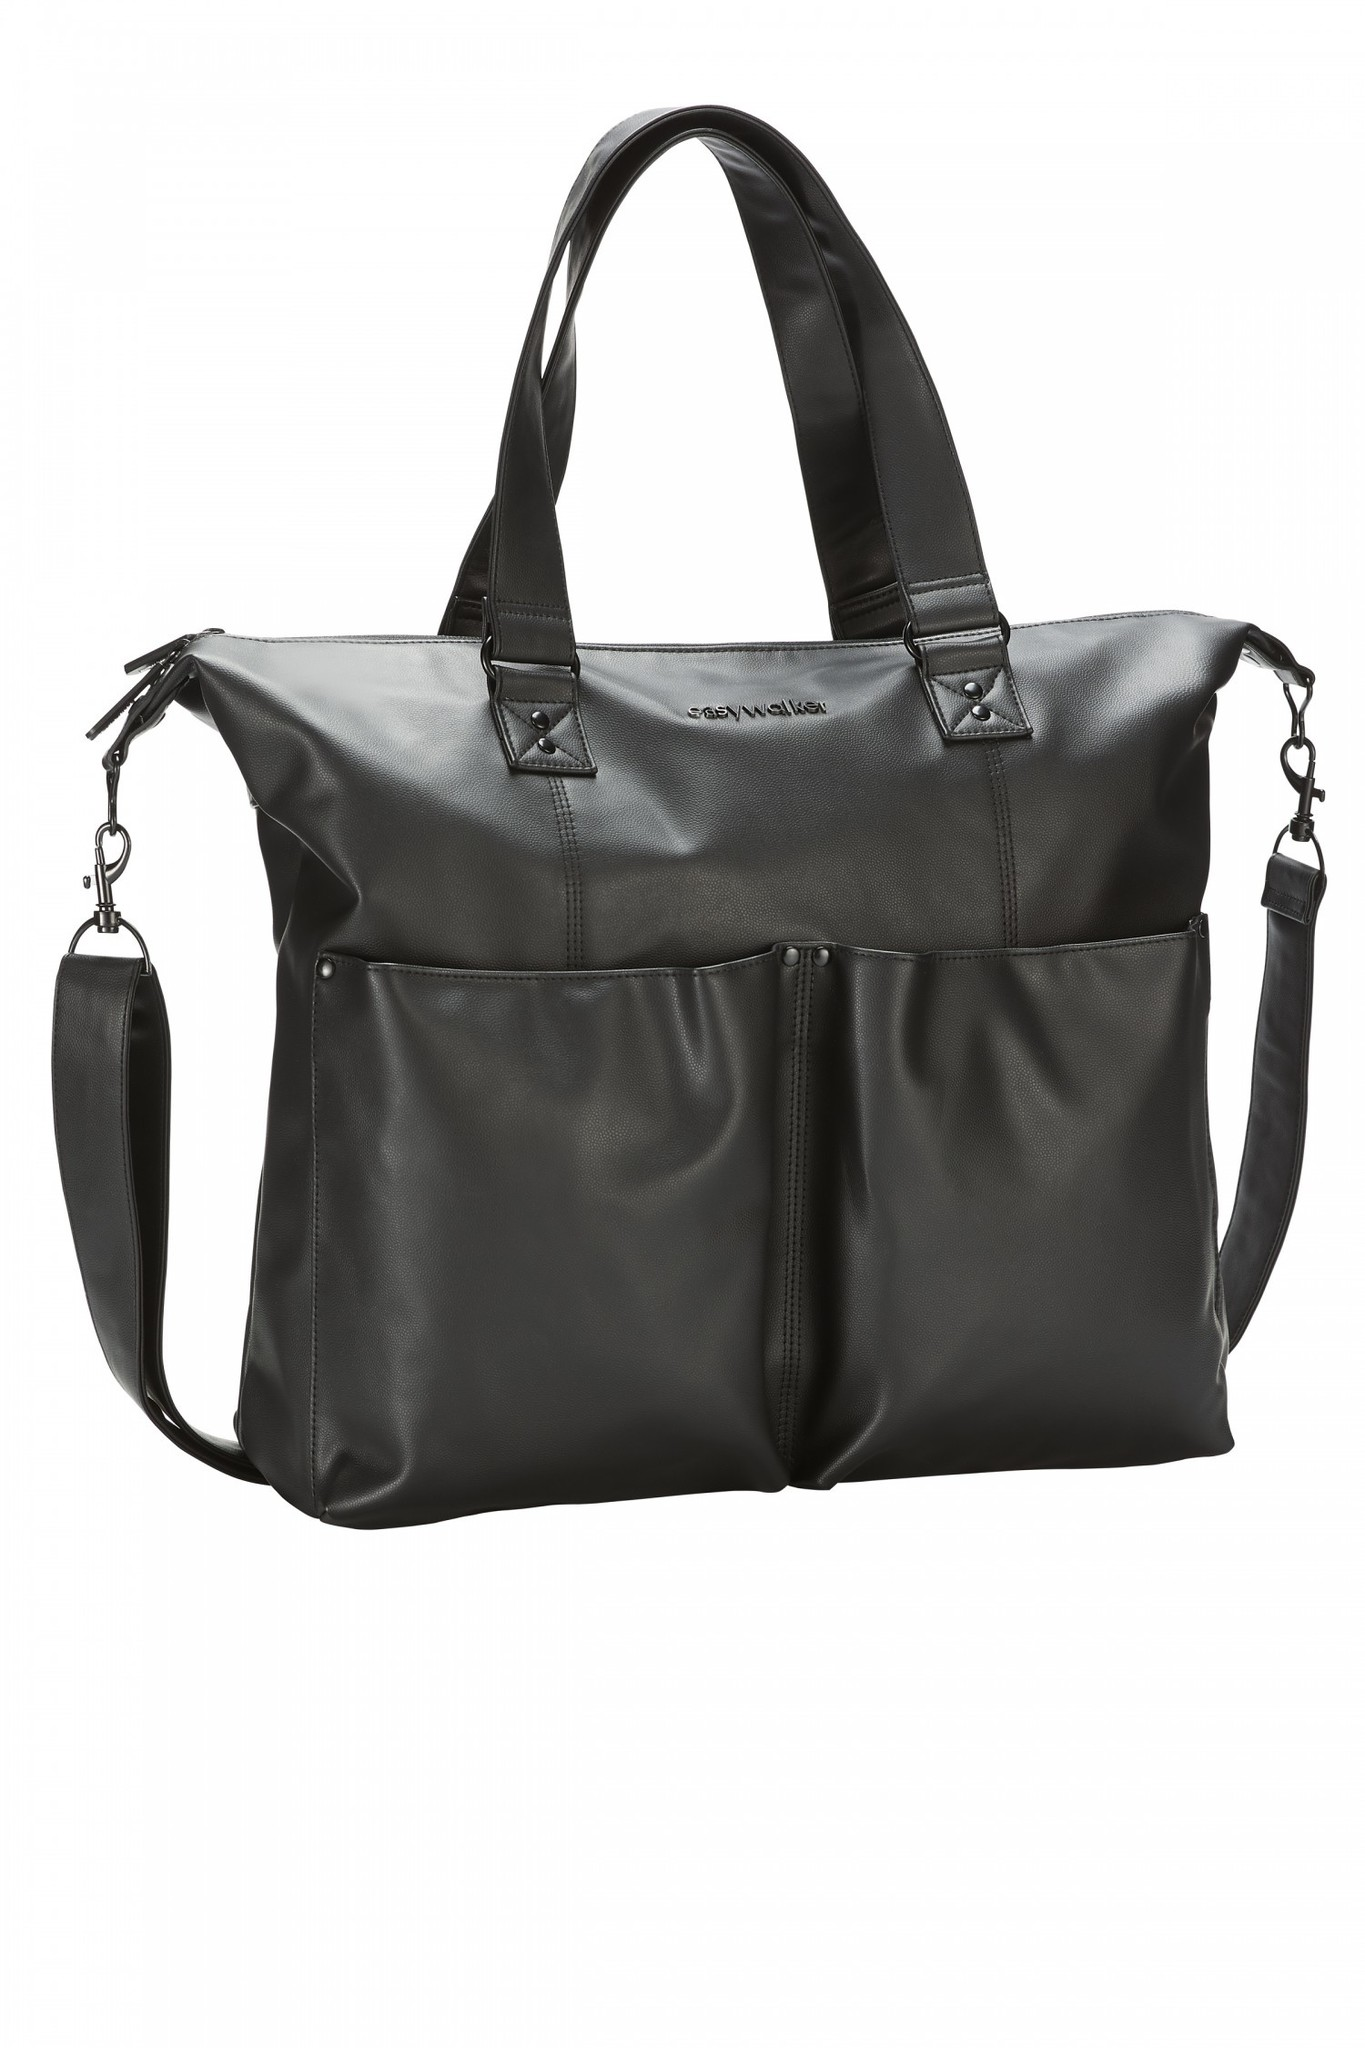 Easywalker Easywalker nursery bag / verzorgingstas leather Onyx Black